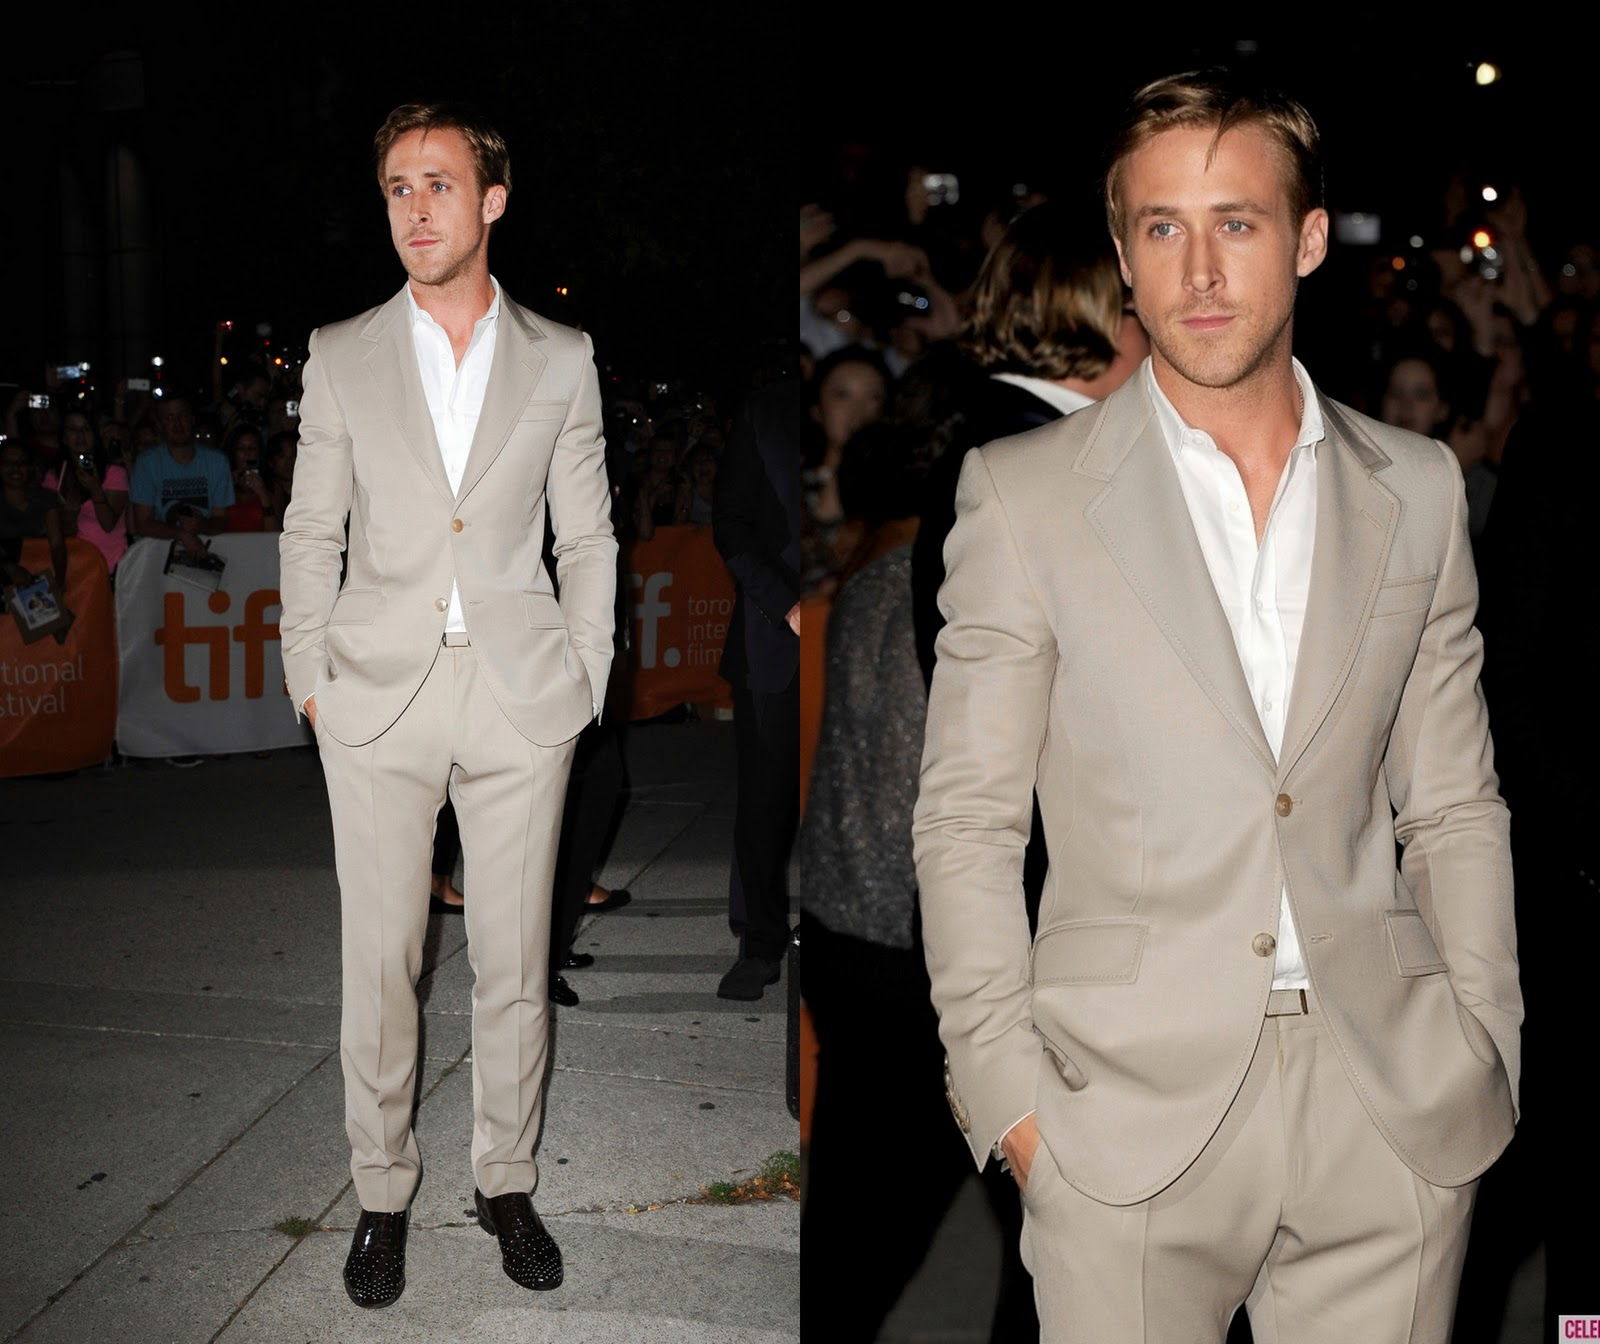 Ryan Gosling Suit (in gucci suit)